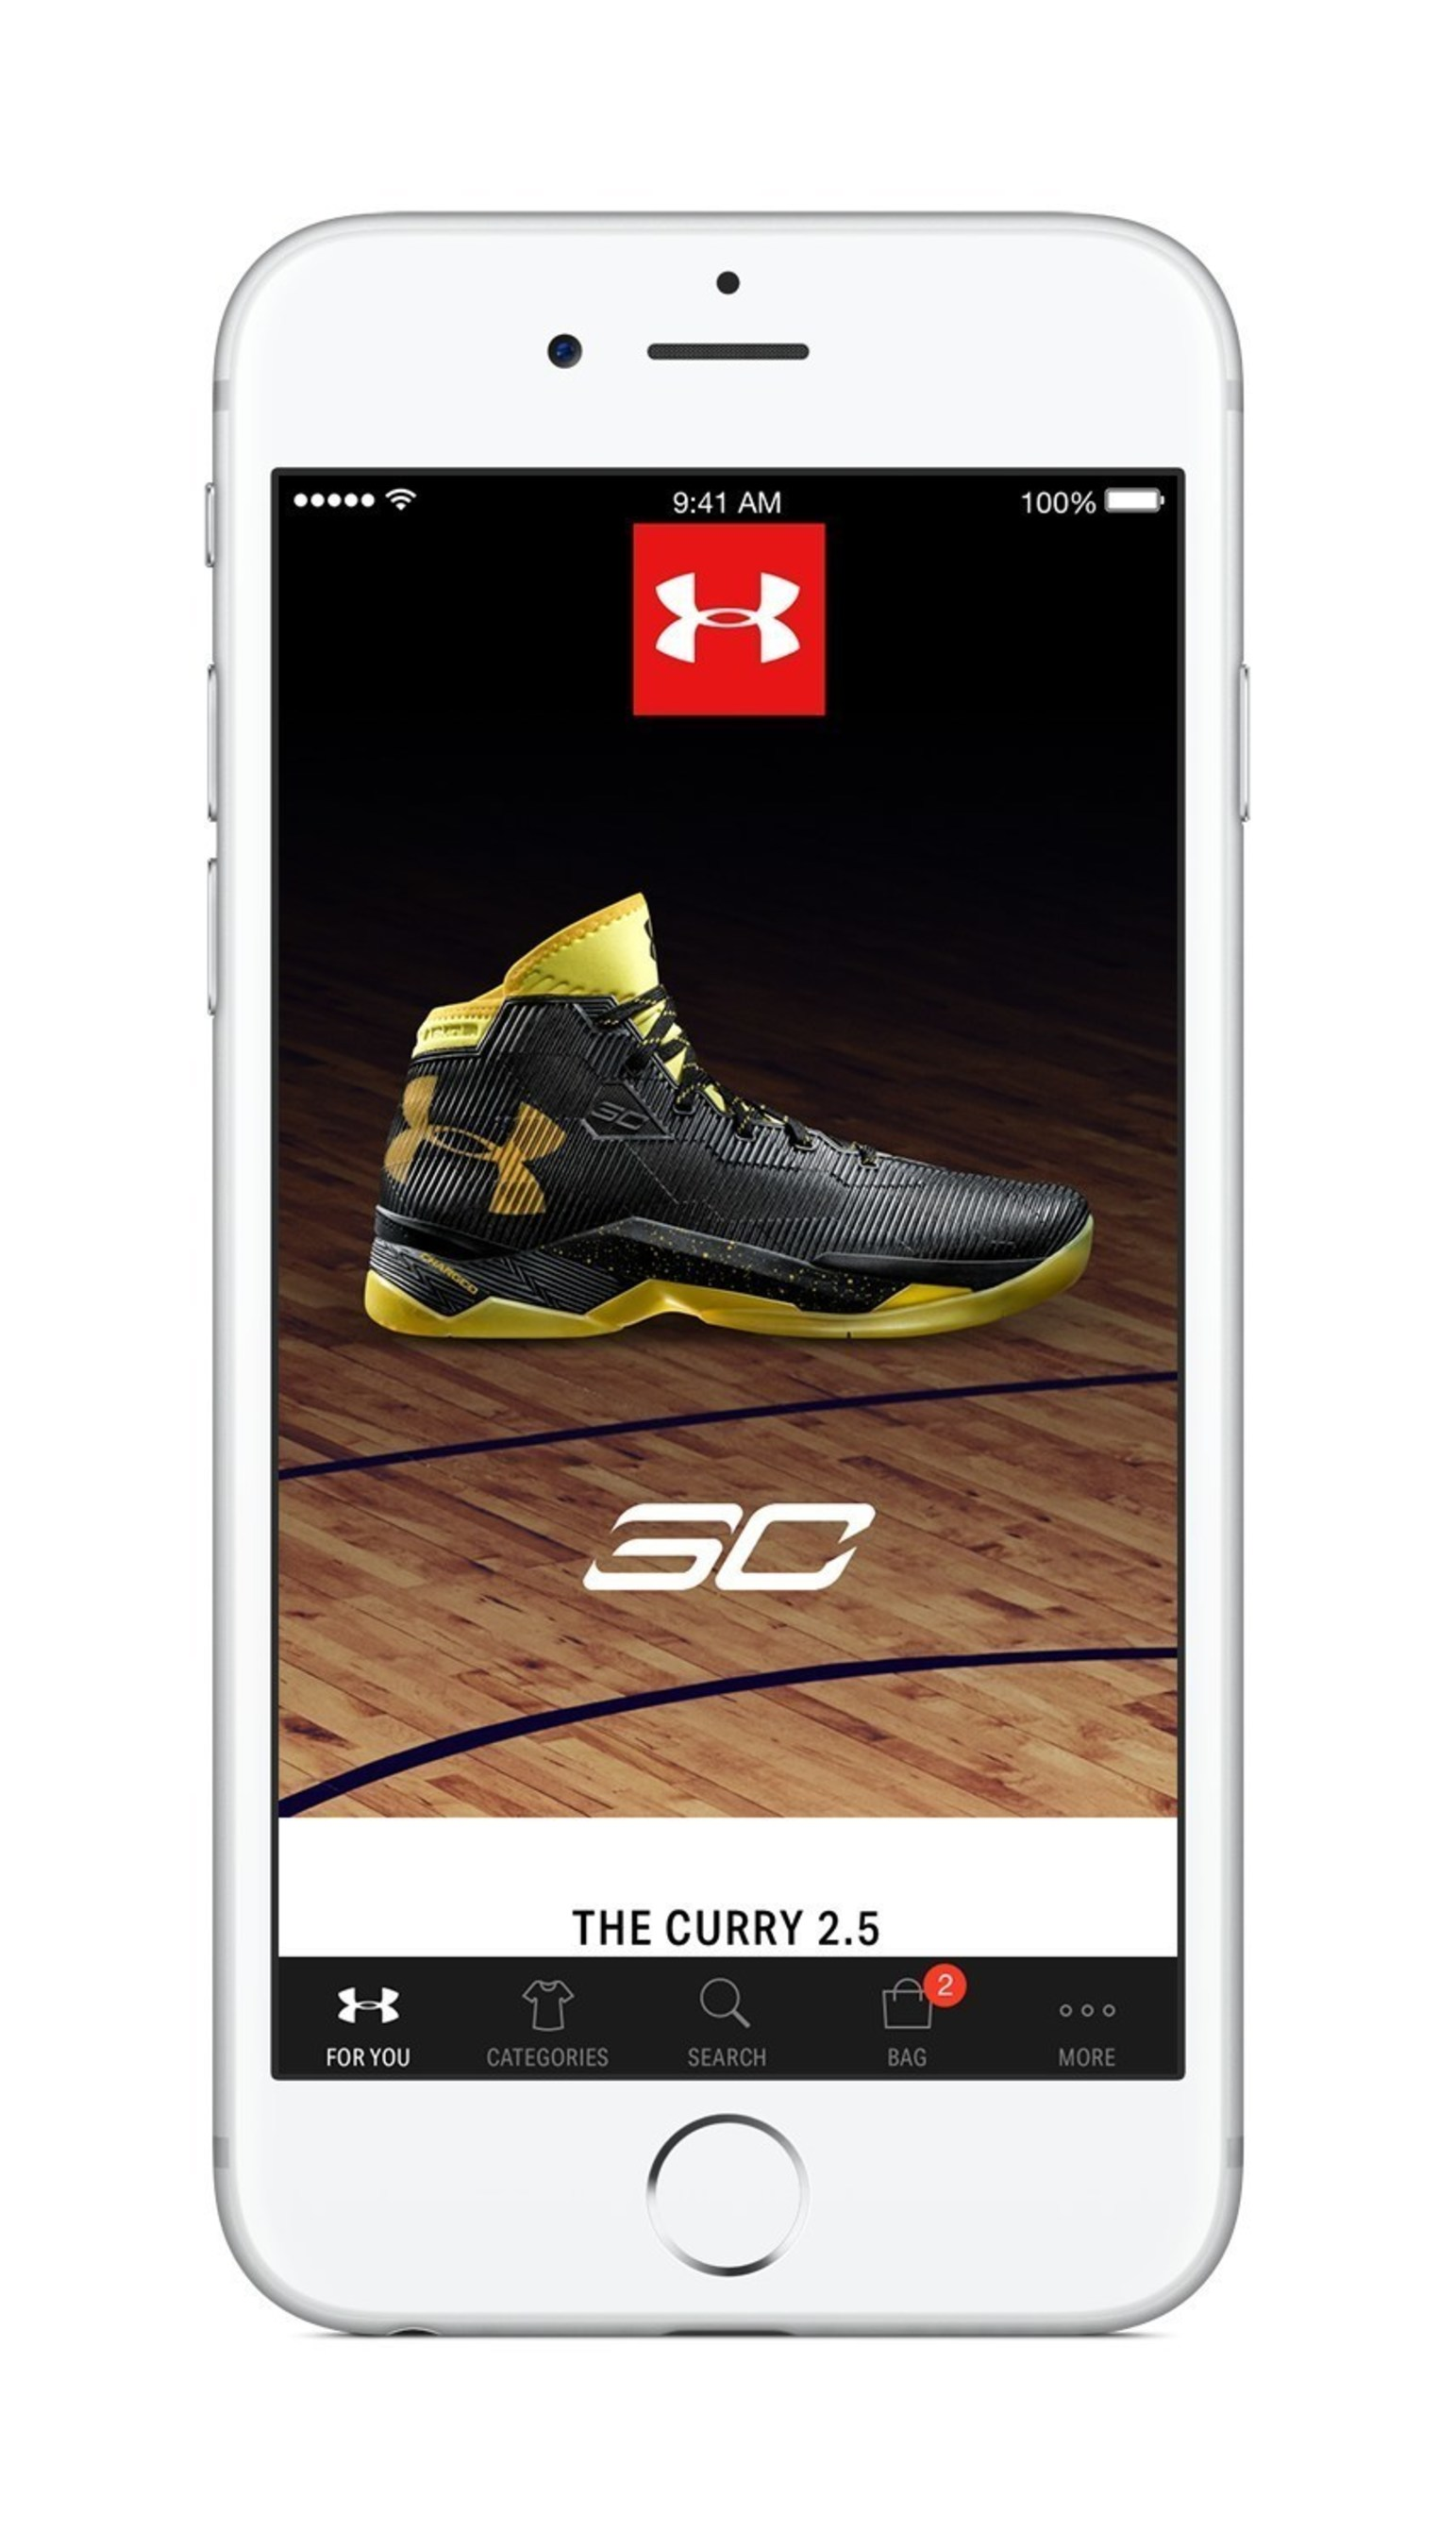 UNDER ARMOUR LAUNCHES UA SHOP, EXPANDING CONNECTED FITNESS SUITE WITH PERSONALIZED SHOPPING EXPERIENCE